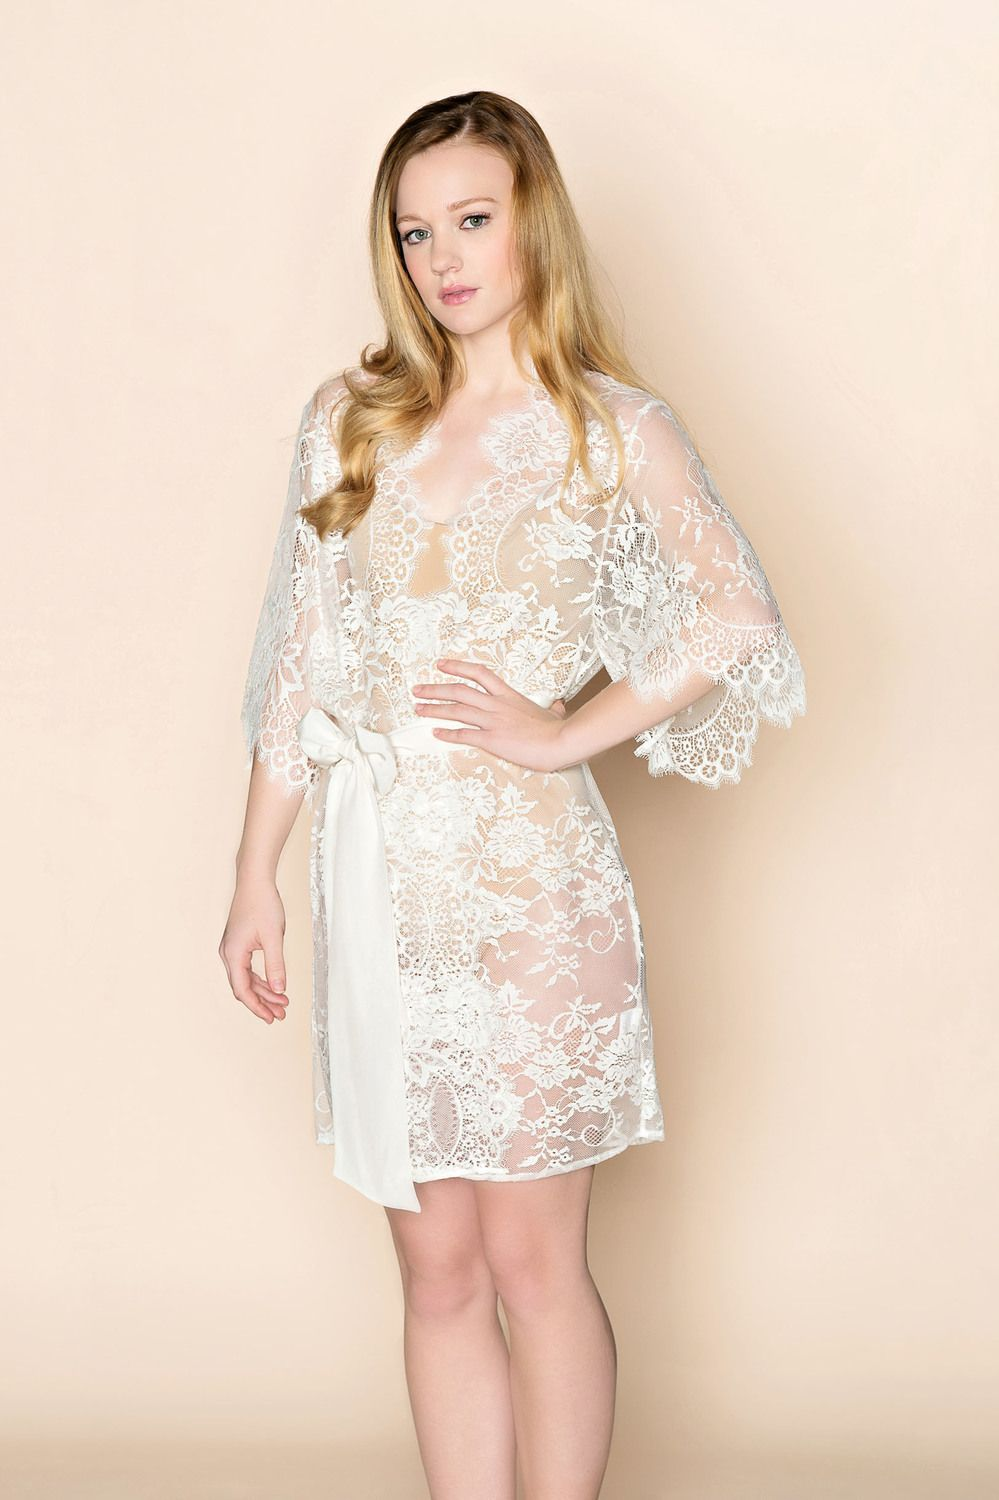 7b26b4d1dab Swan Queen lace kimono bridal robe in ivory or blush - Style 102 ...